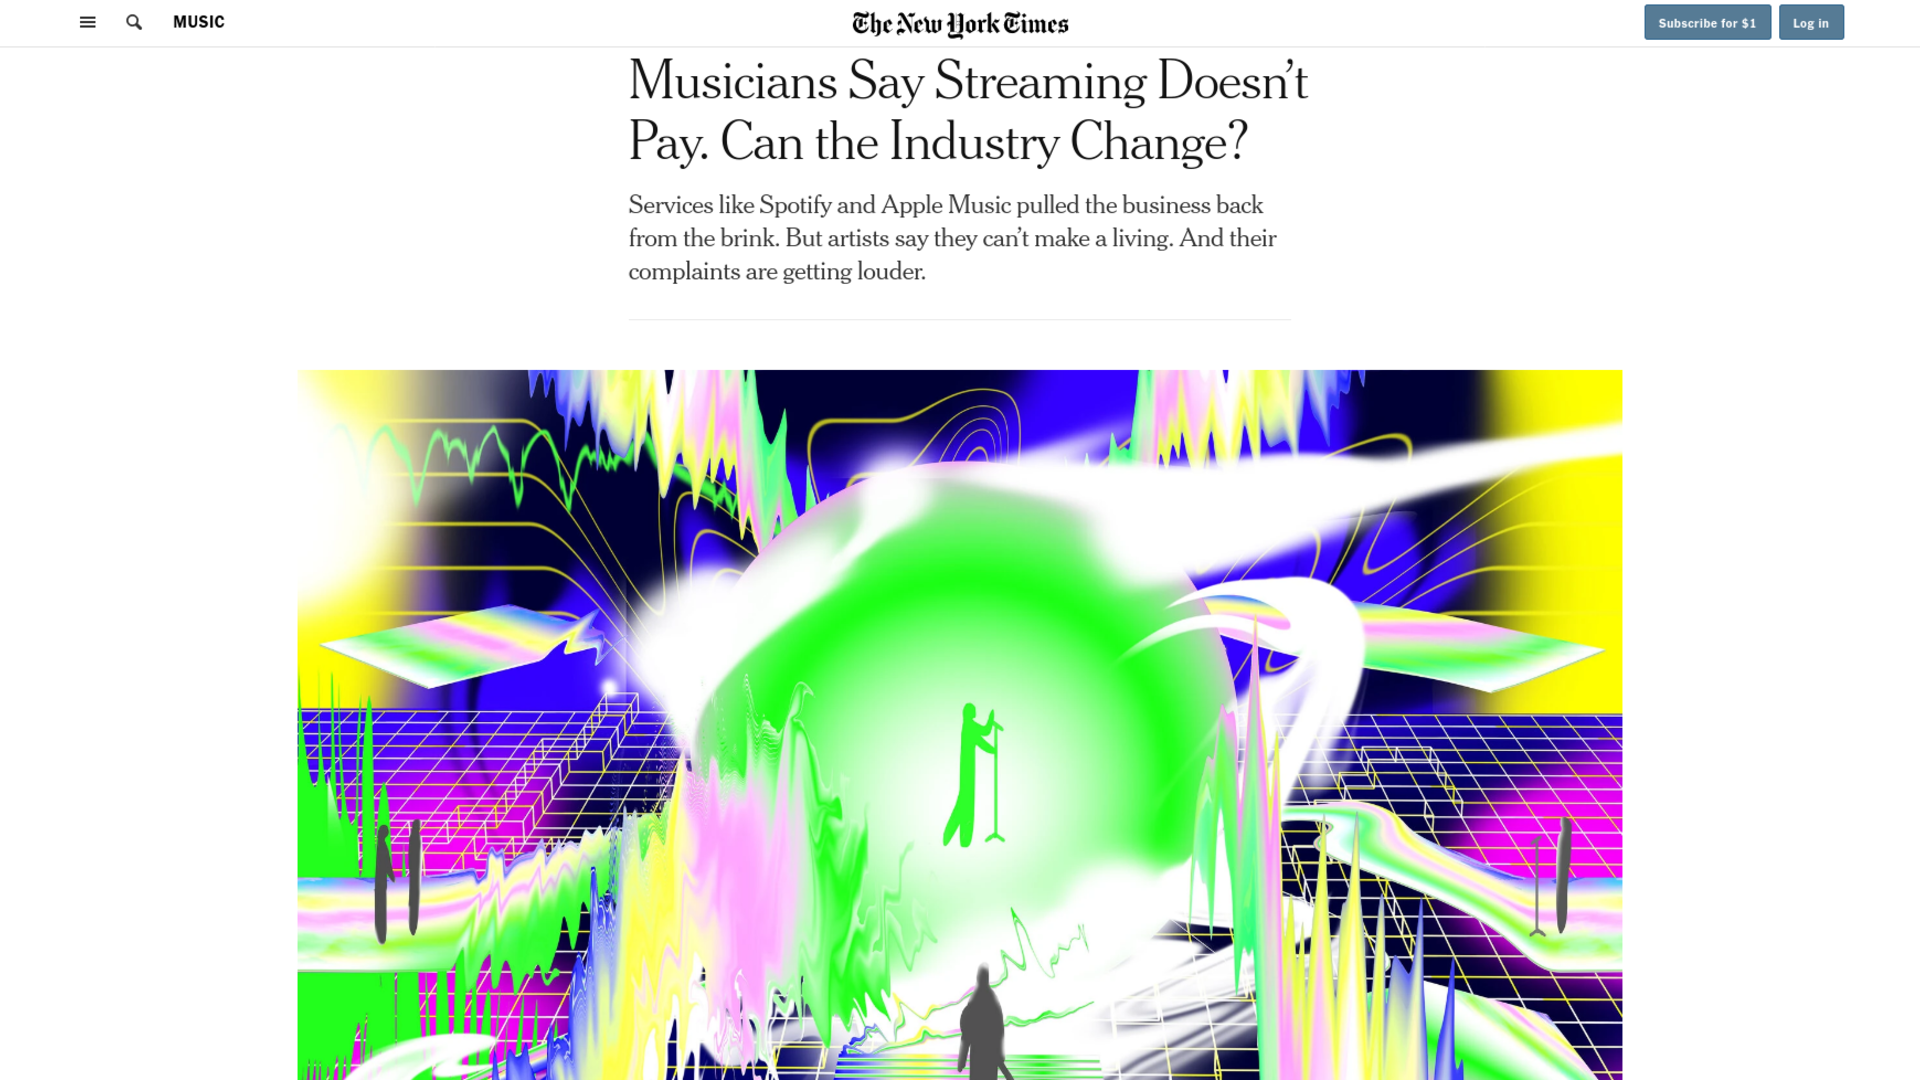 Fairness Rocks News Musicians Say Streaming Doesn't Pay. Can the Industry Change?